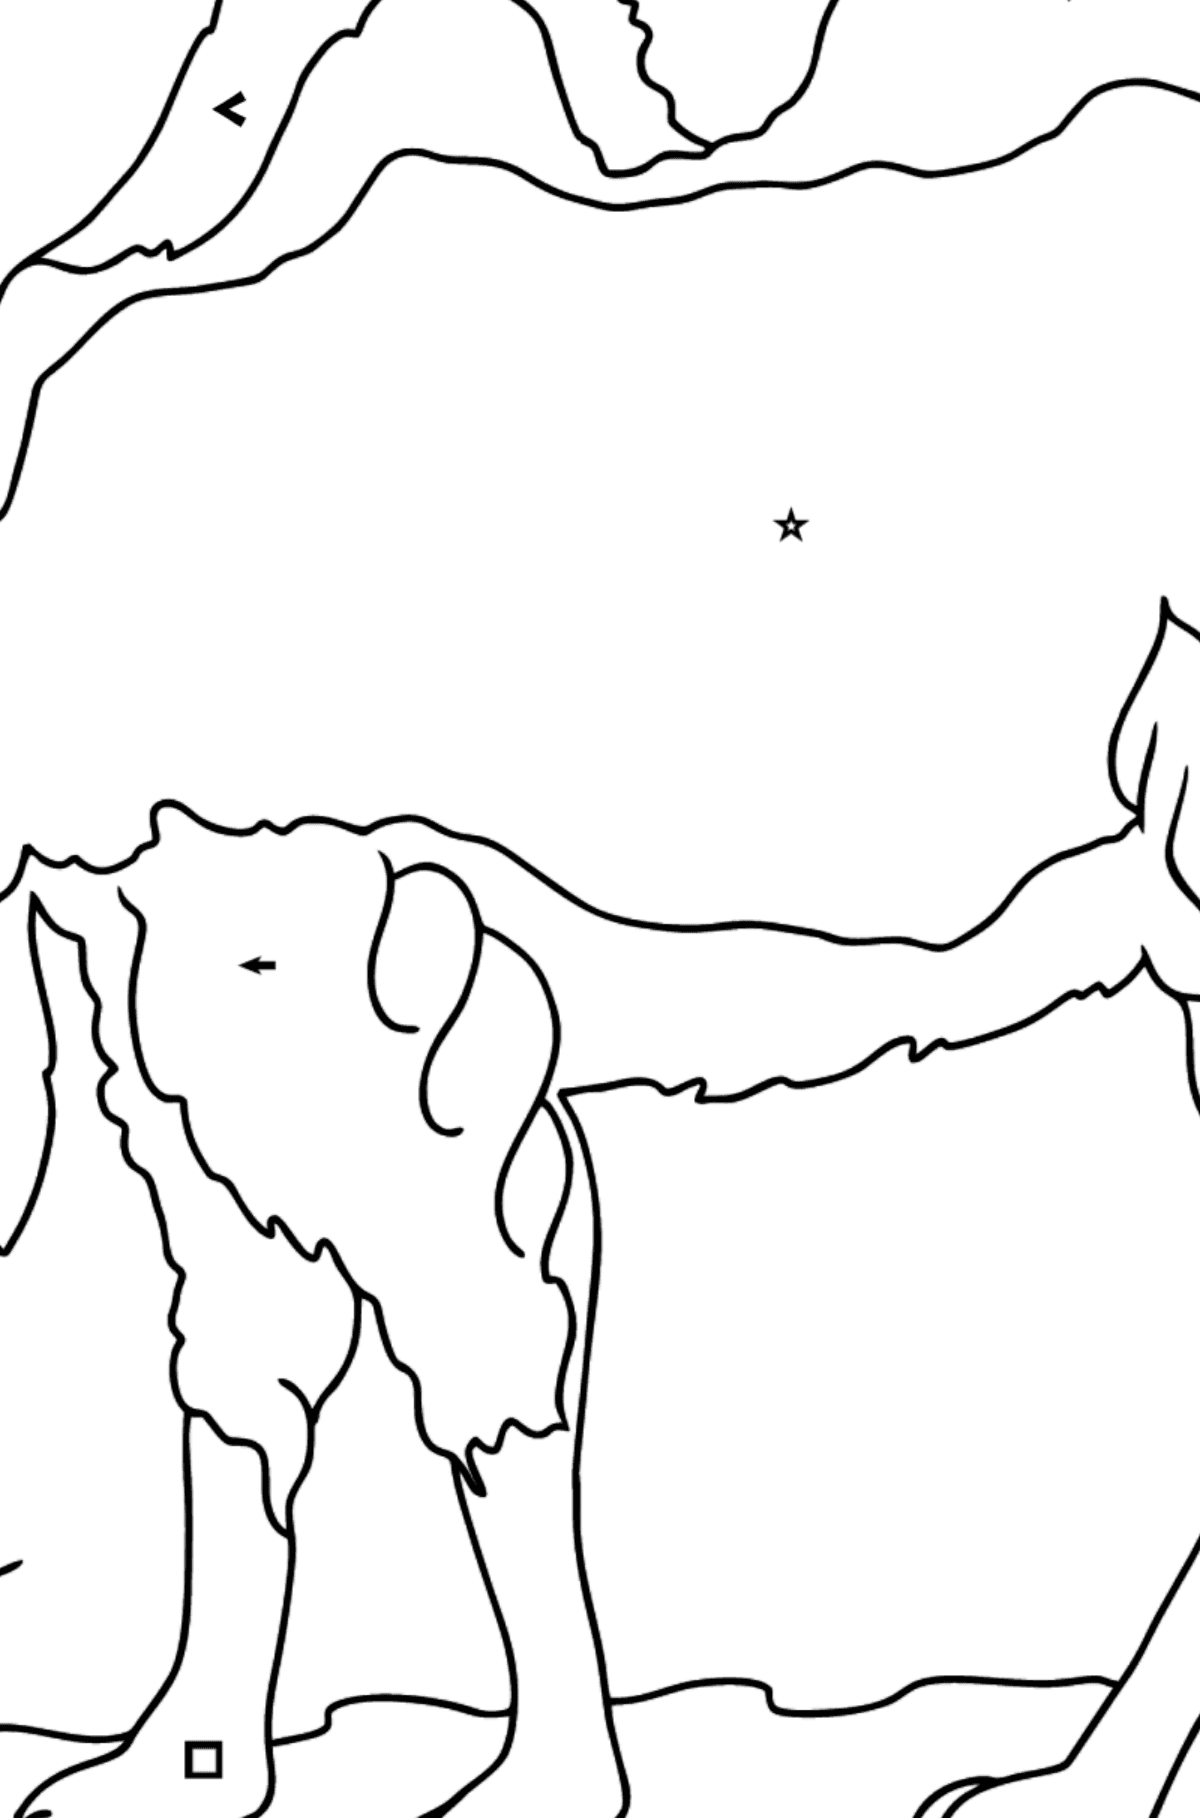 A Camel with Two Humped Coloring Page - Coloring by Symbols and Geometric Shapes for Kids